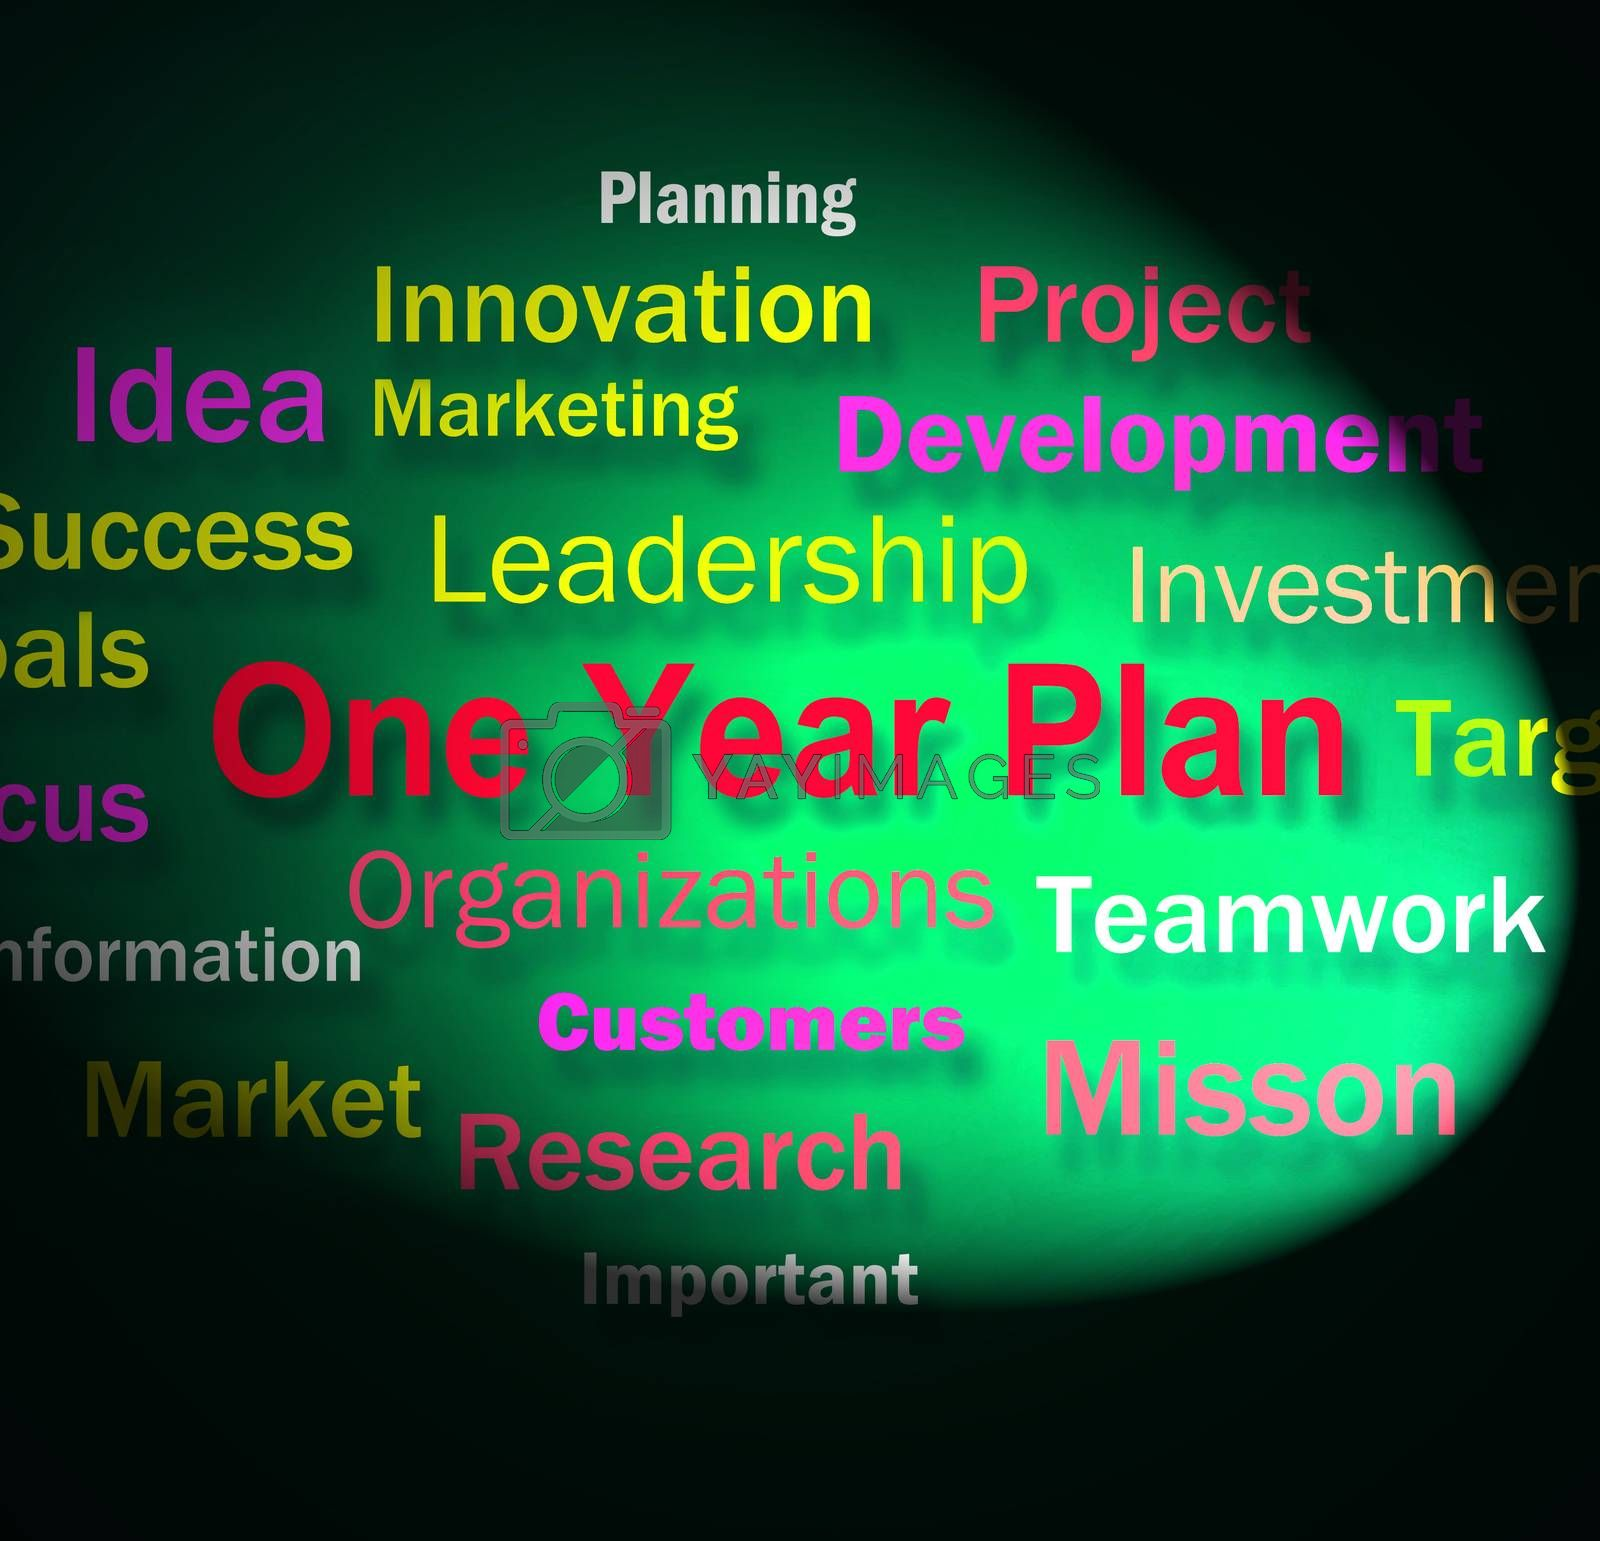 One Year Plan Words Means Goals For Next Year by stuartmiles